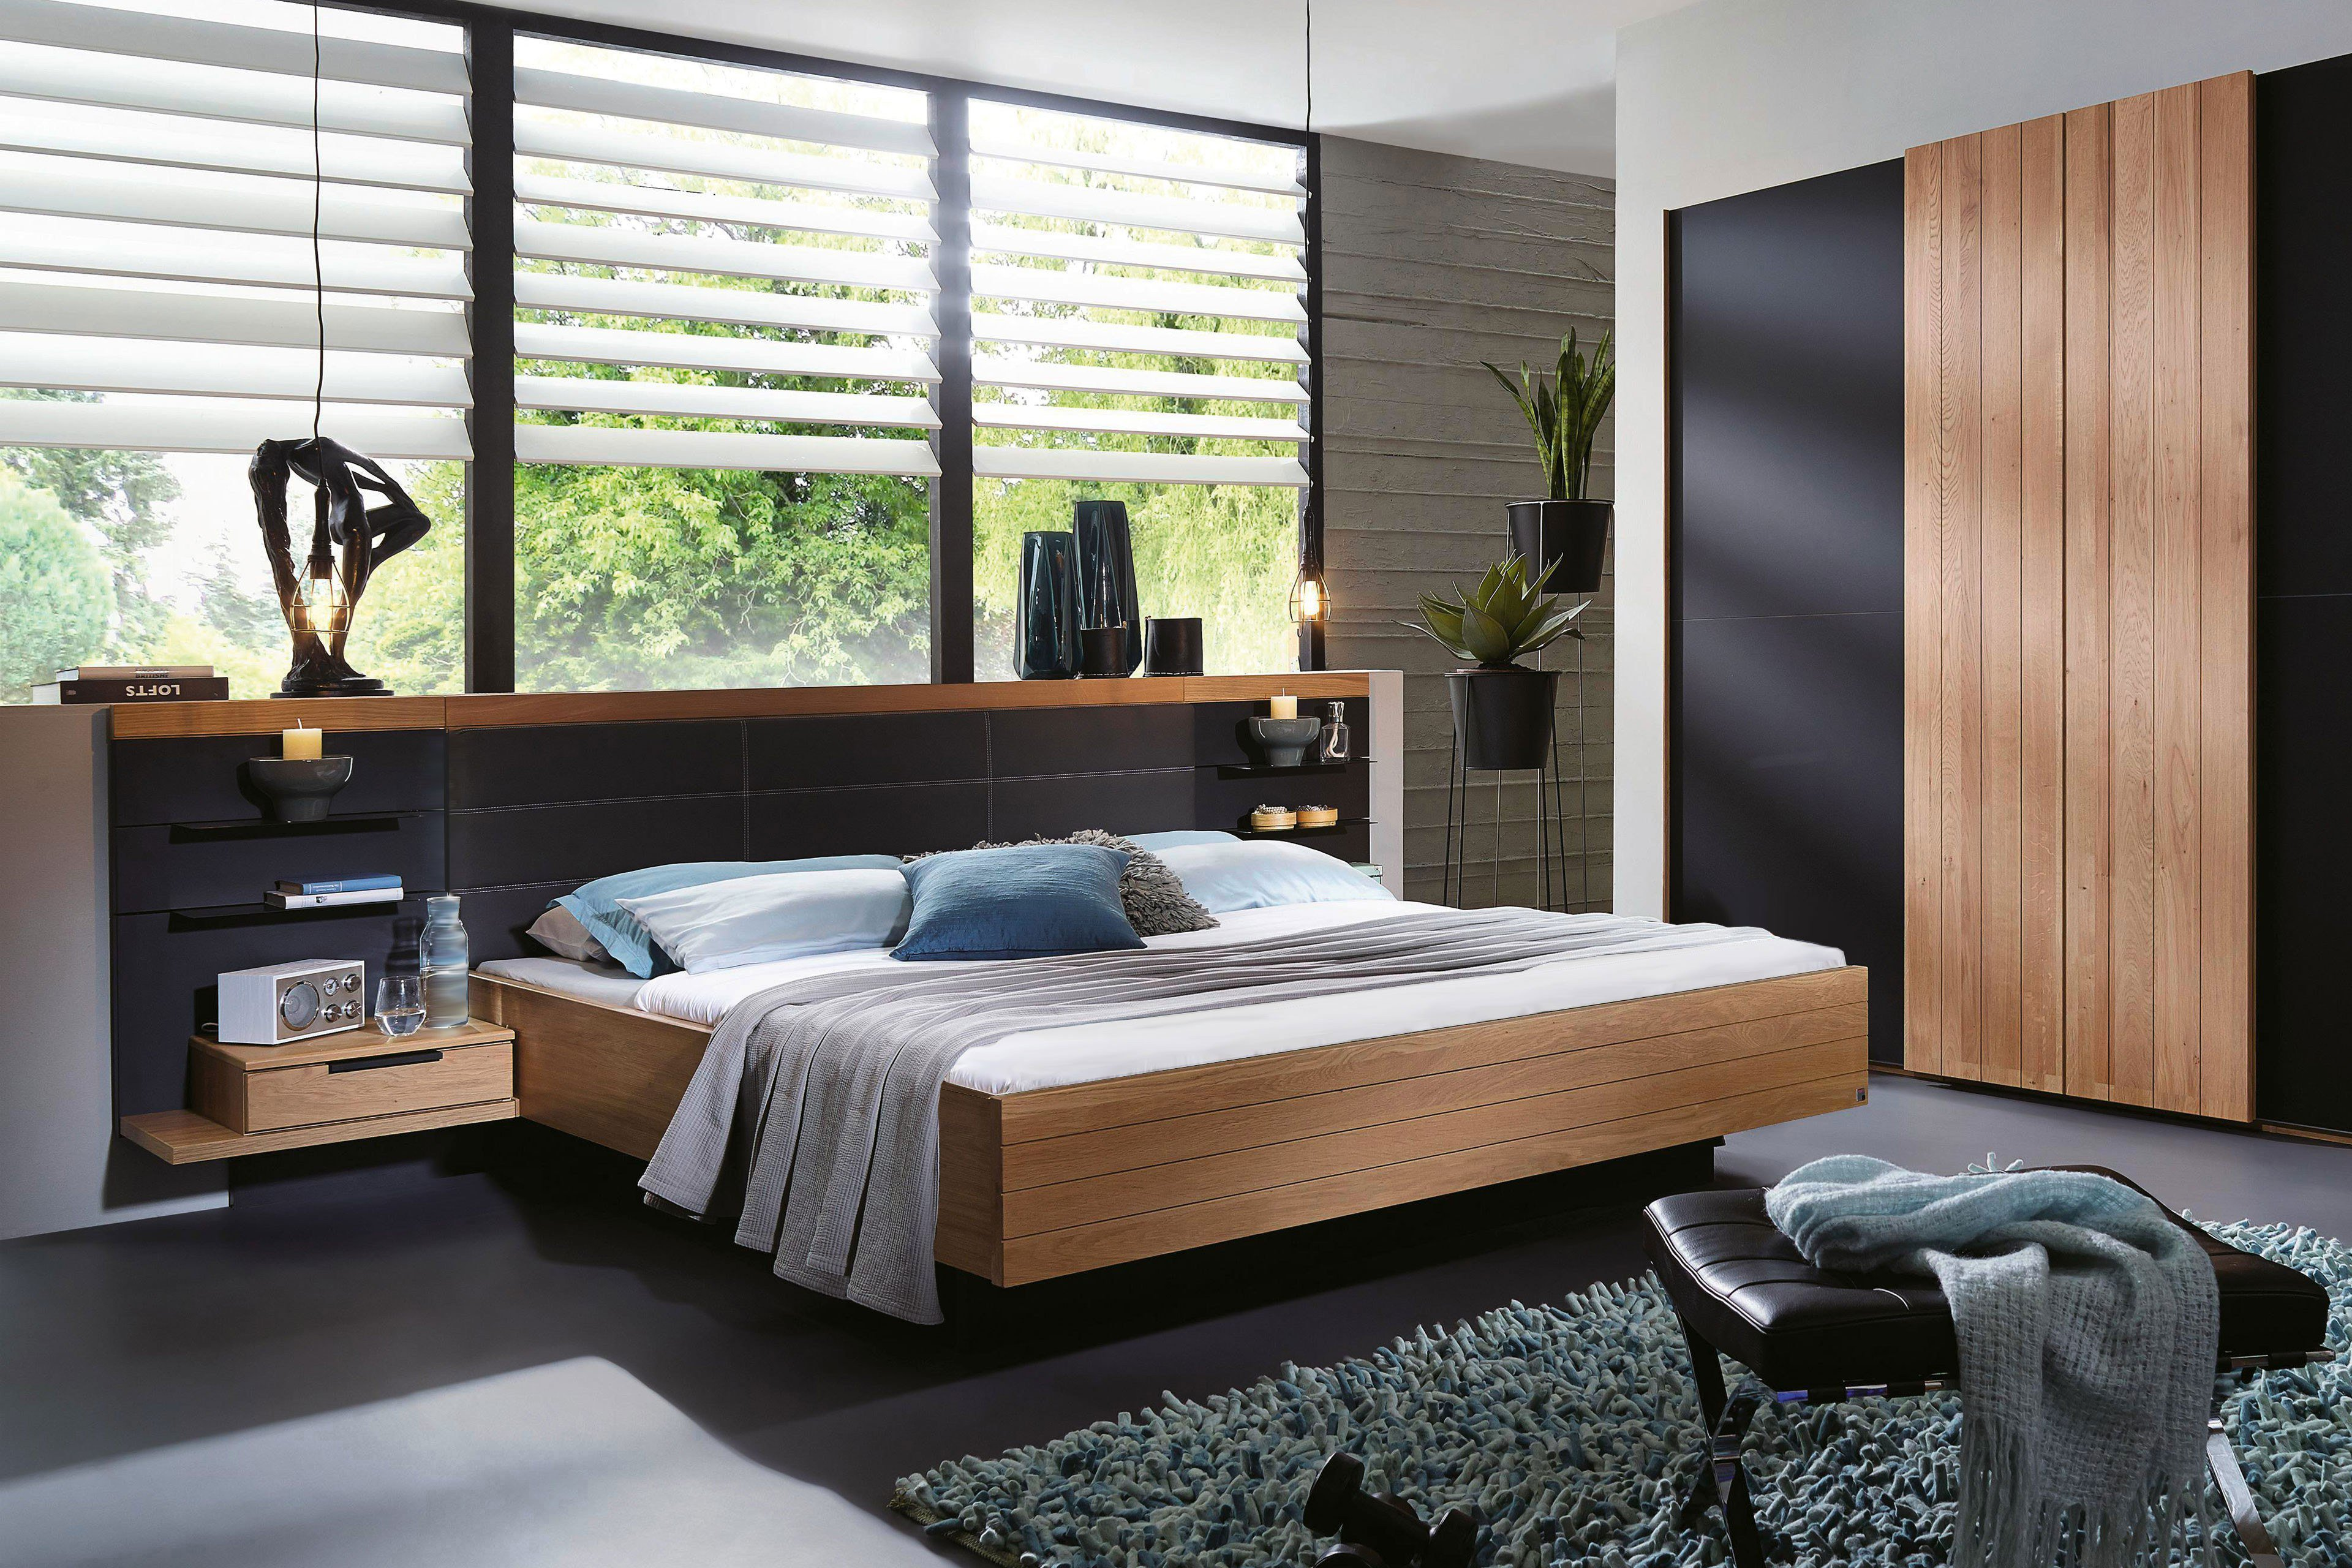 betten von rauch so bestellen sie ihr wunschbett in schritten beautiful rauch packus bett. Black Bedroom Furniture Sets. Home Design Ideas